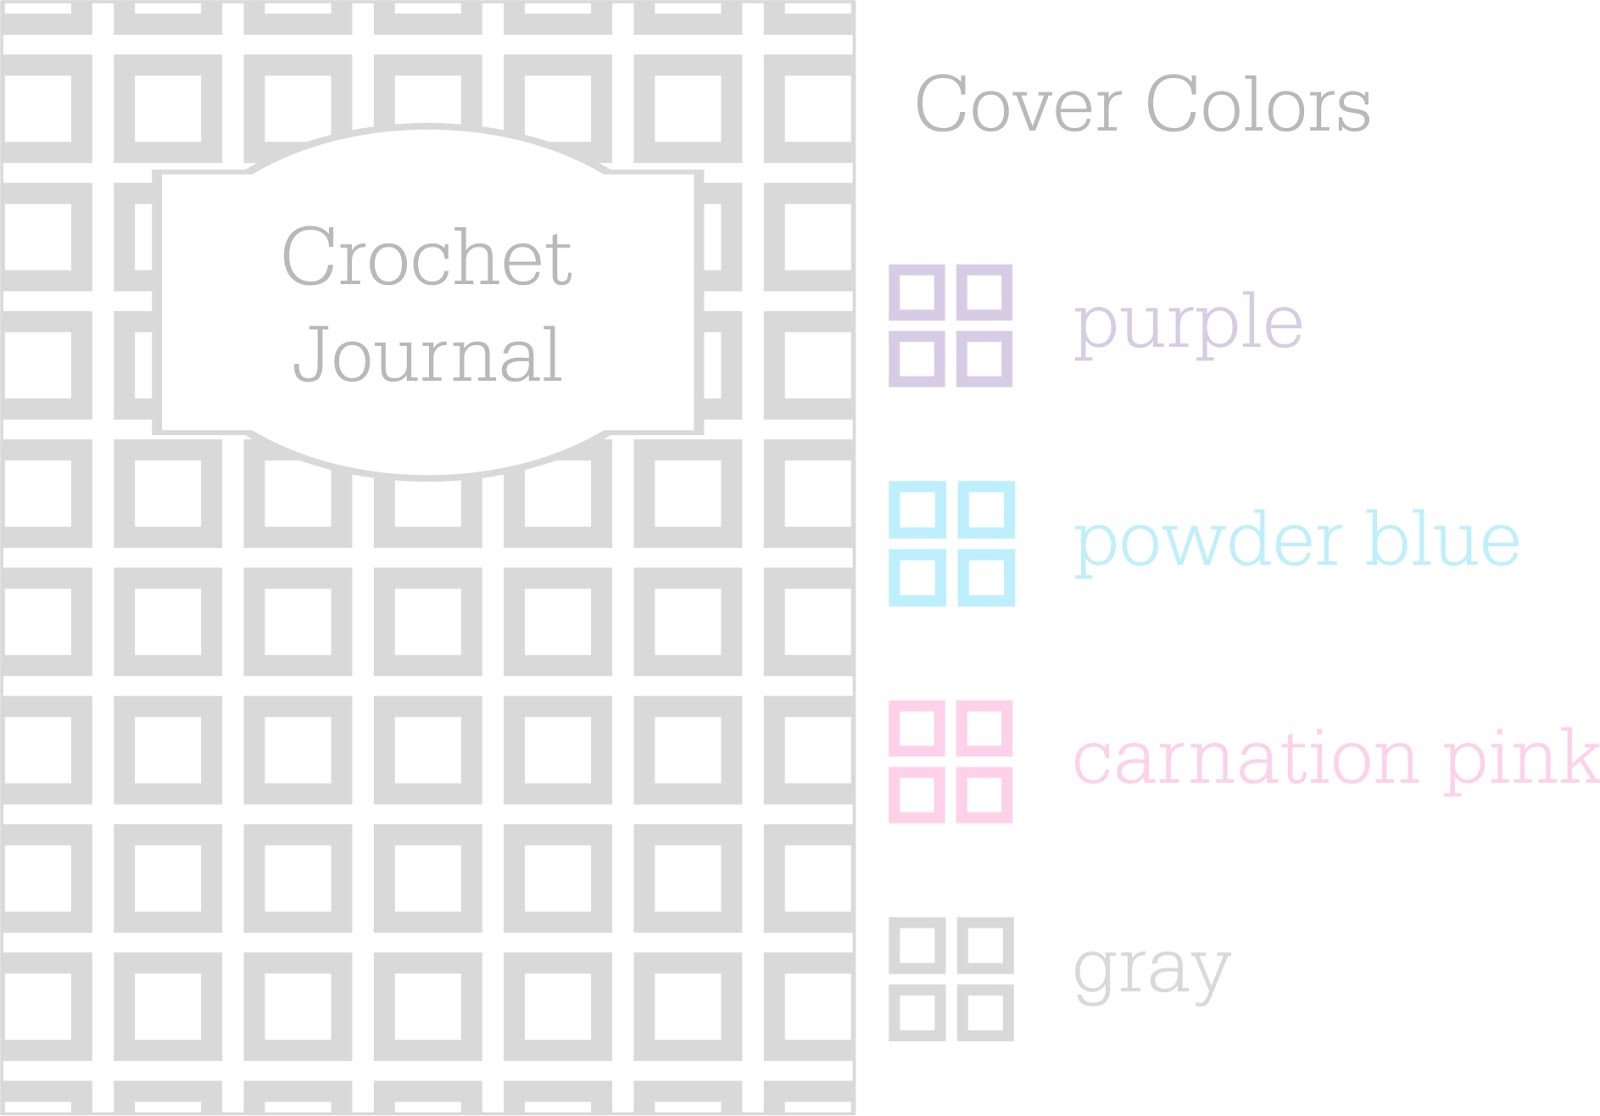 Crochet Journal : crochet+journal+etsy+graphic+1.jpg